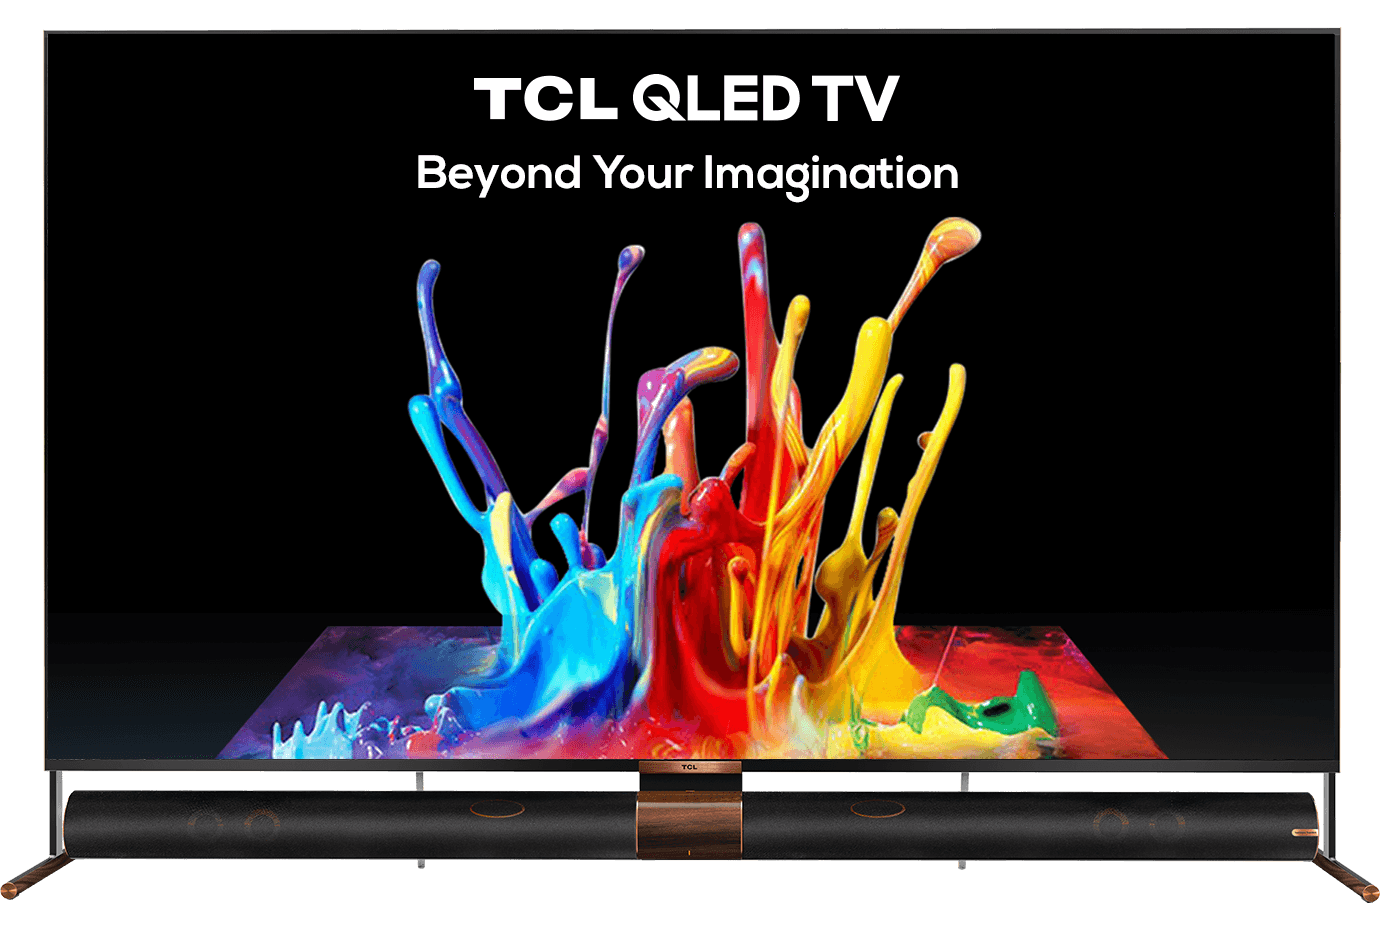 TCL QLED tv - beyond your imagination